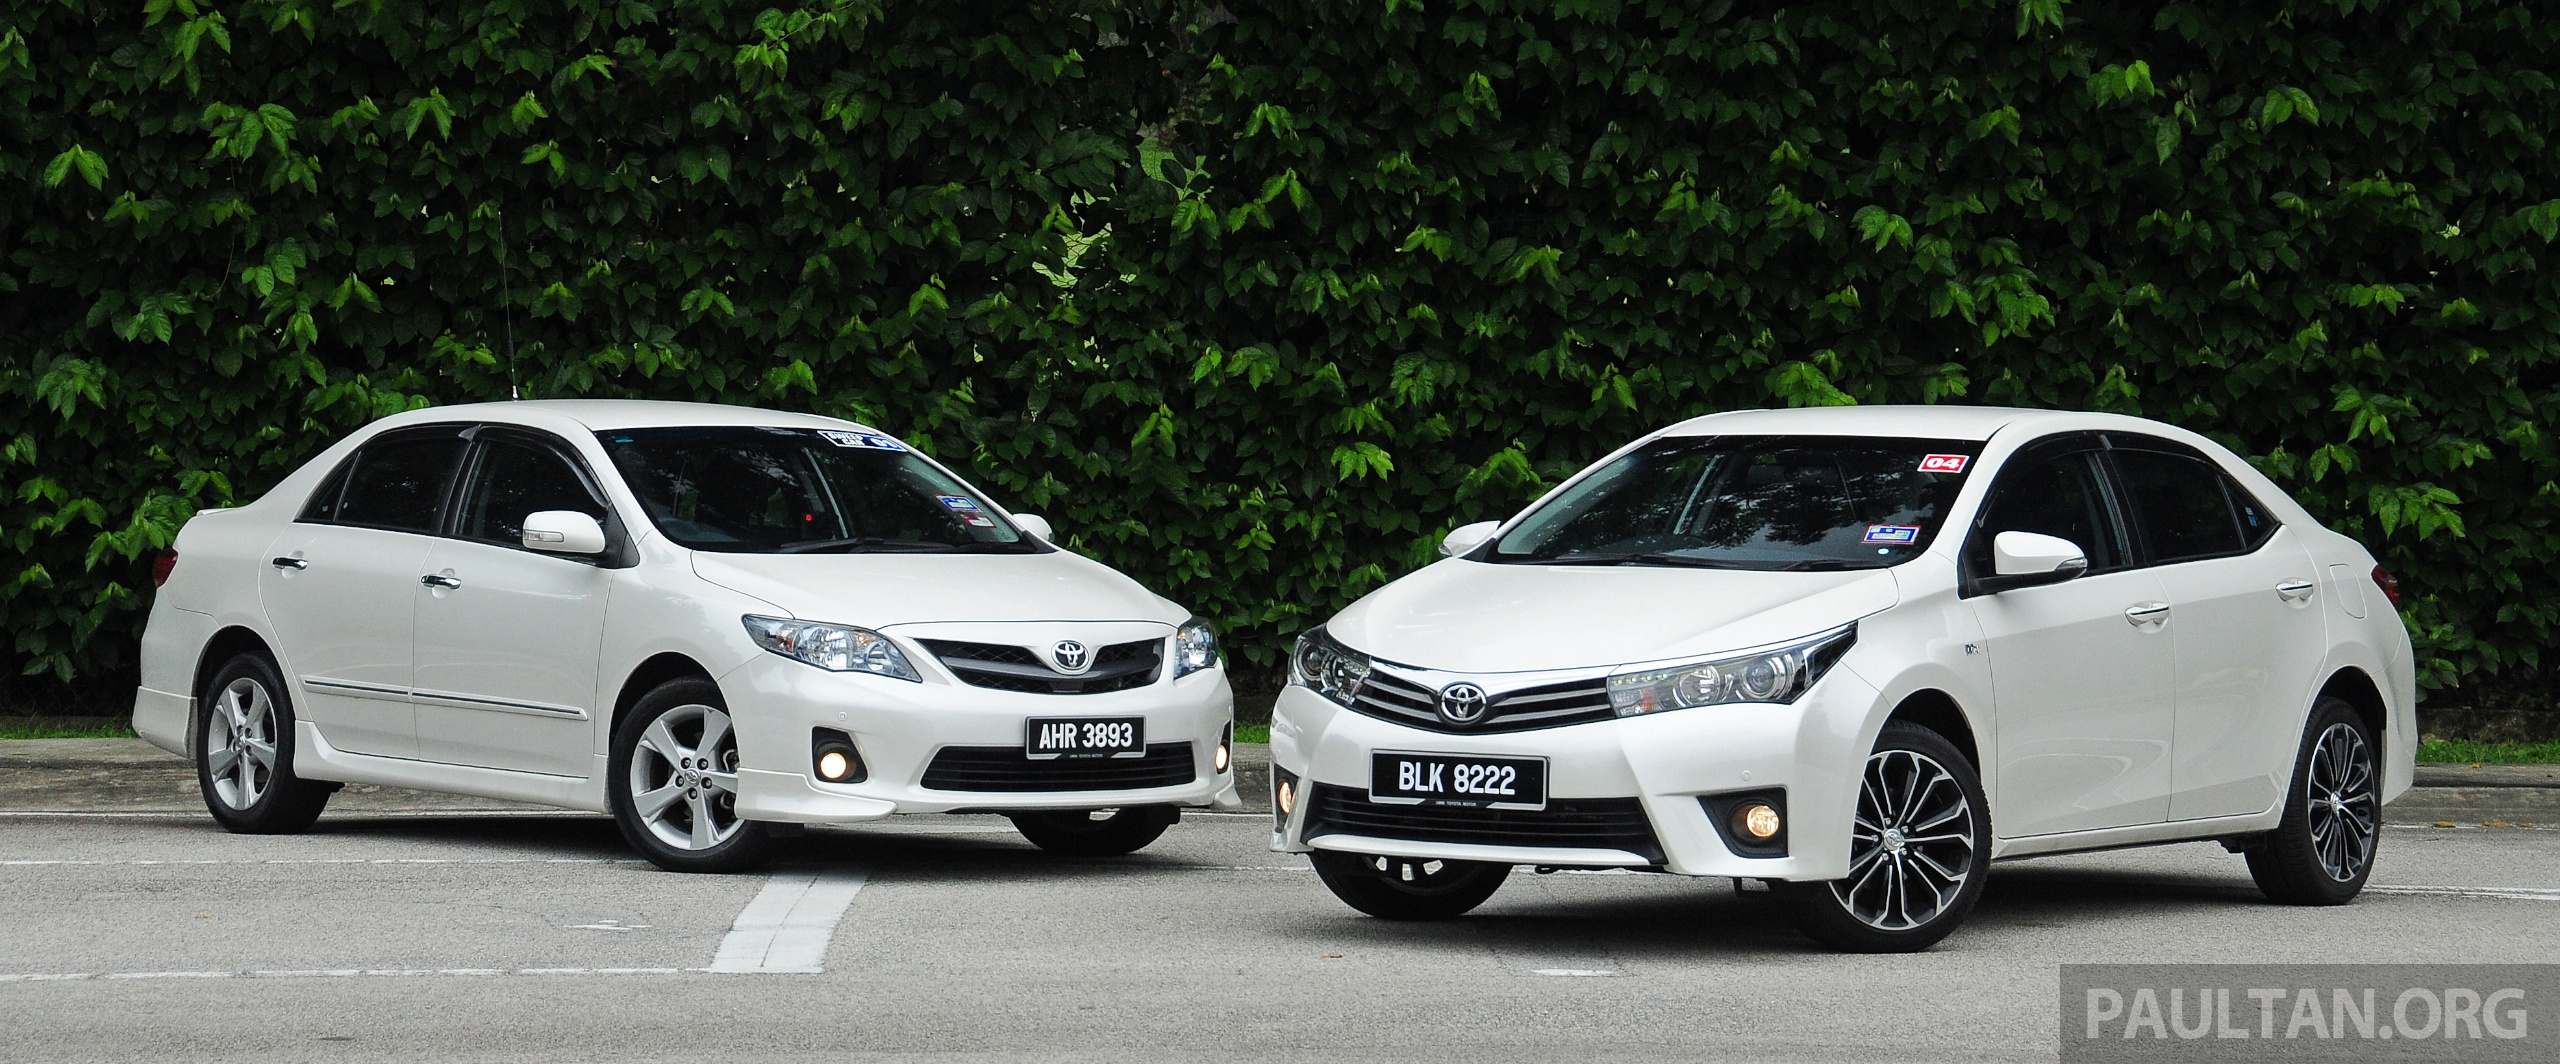 gallery old and new toyota corolla altis compared image 222543. Black Bedroom Furniture Sets. Home Design Ideas